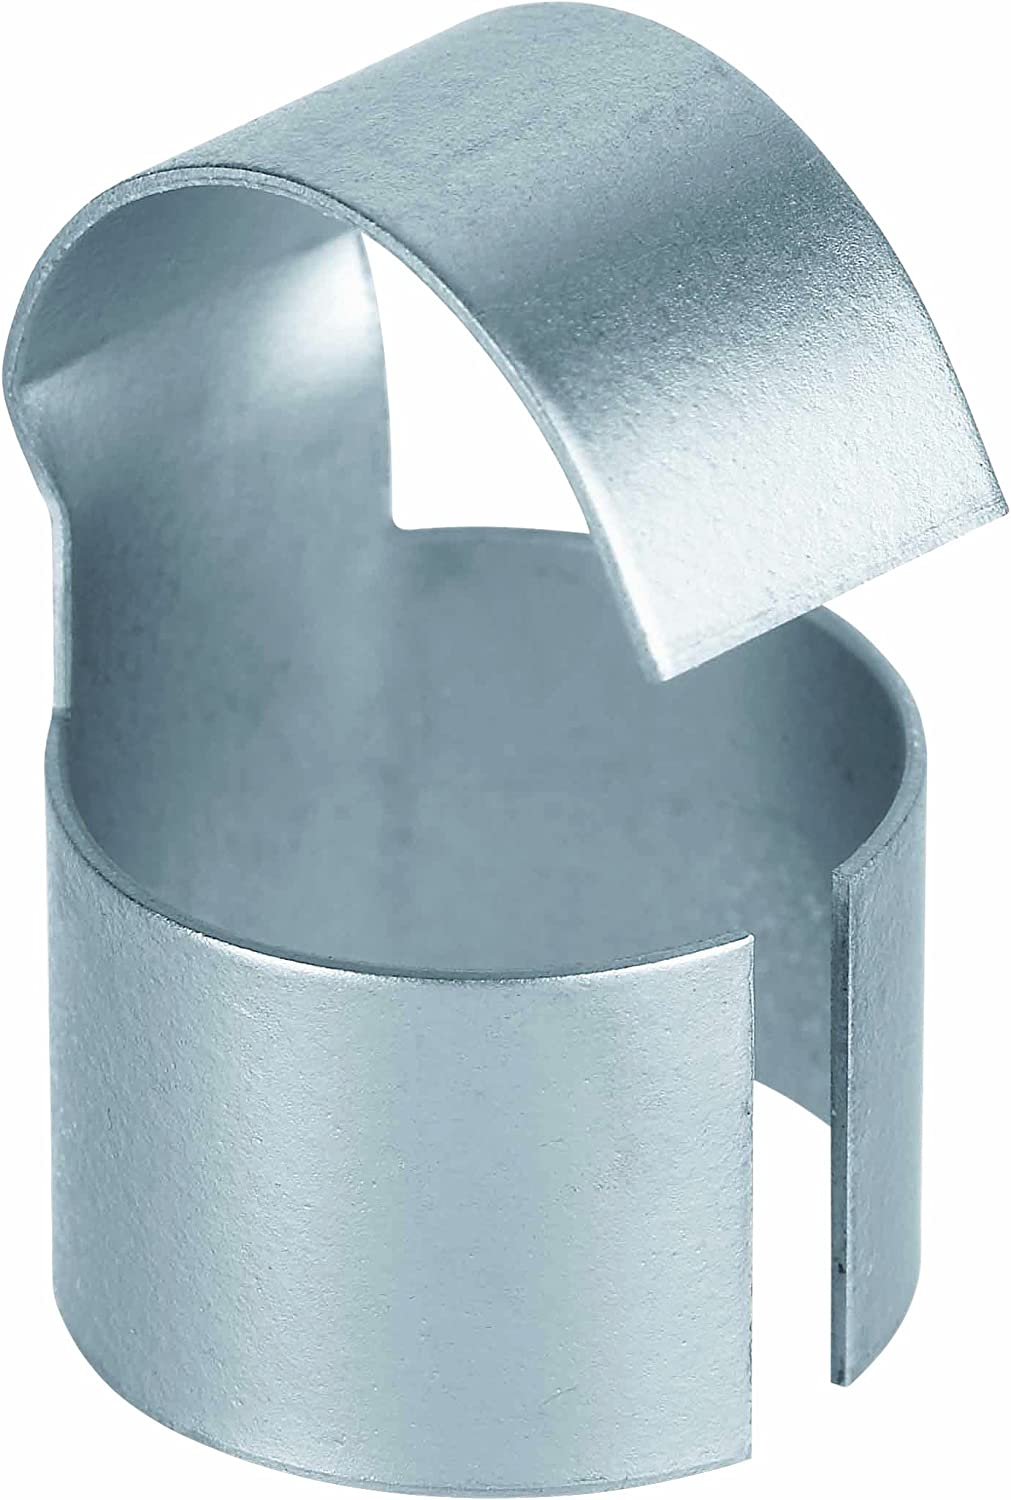 Steinel 10 mm Reflector Nozzle store for HG Heat Genuine 350 perfec ESD is Gun